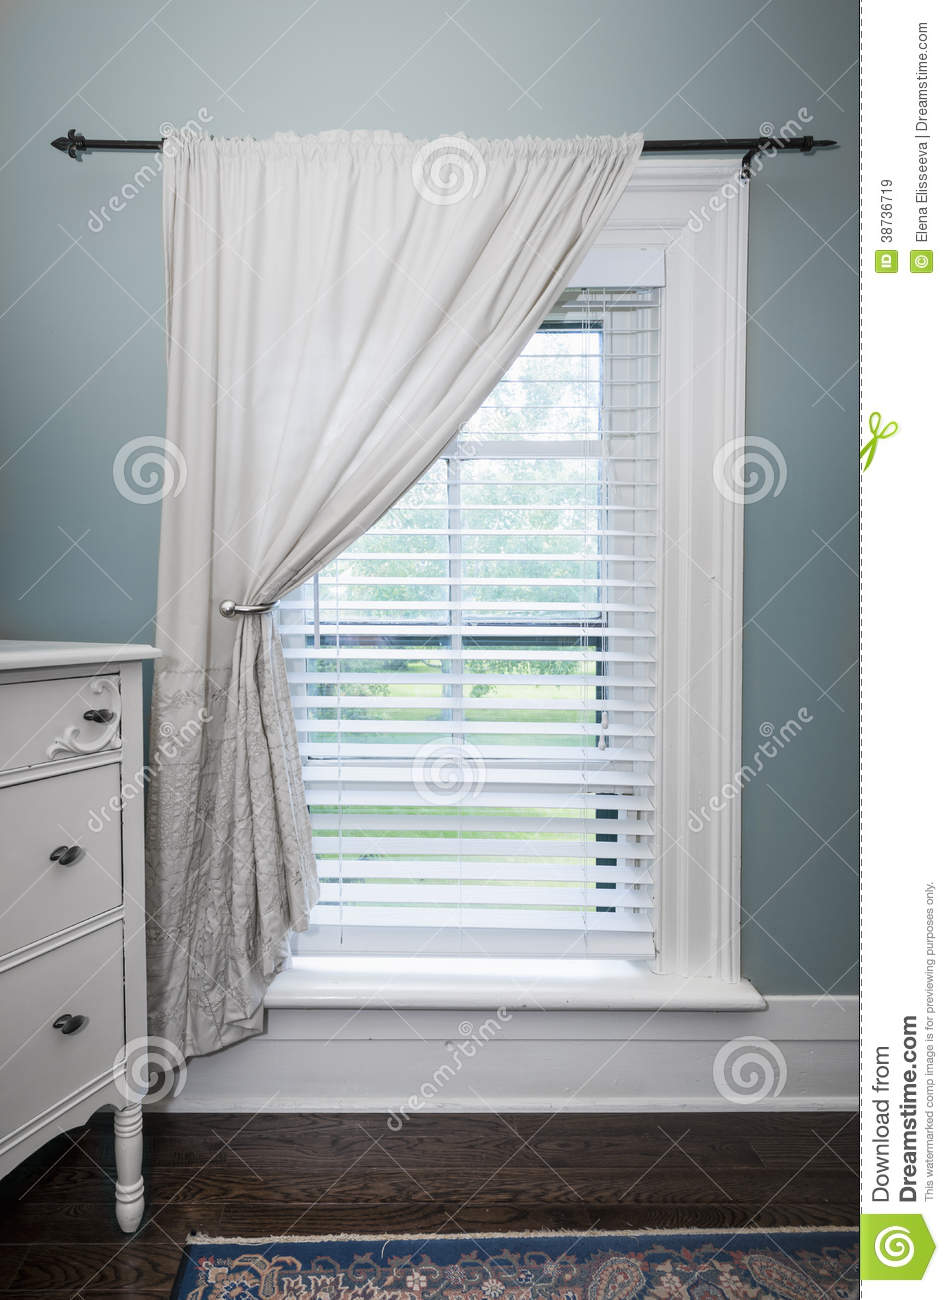 and australia buy blind blinds venetian vertical theblindstore online curtains